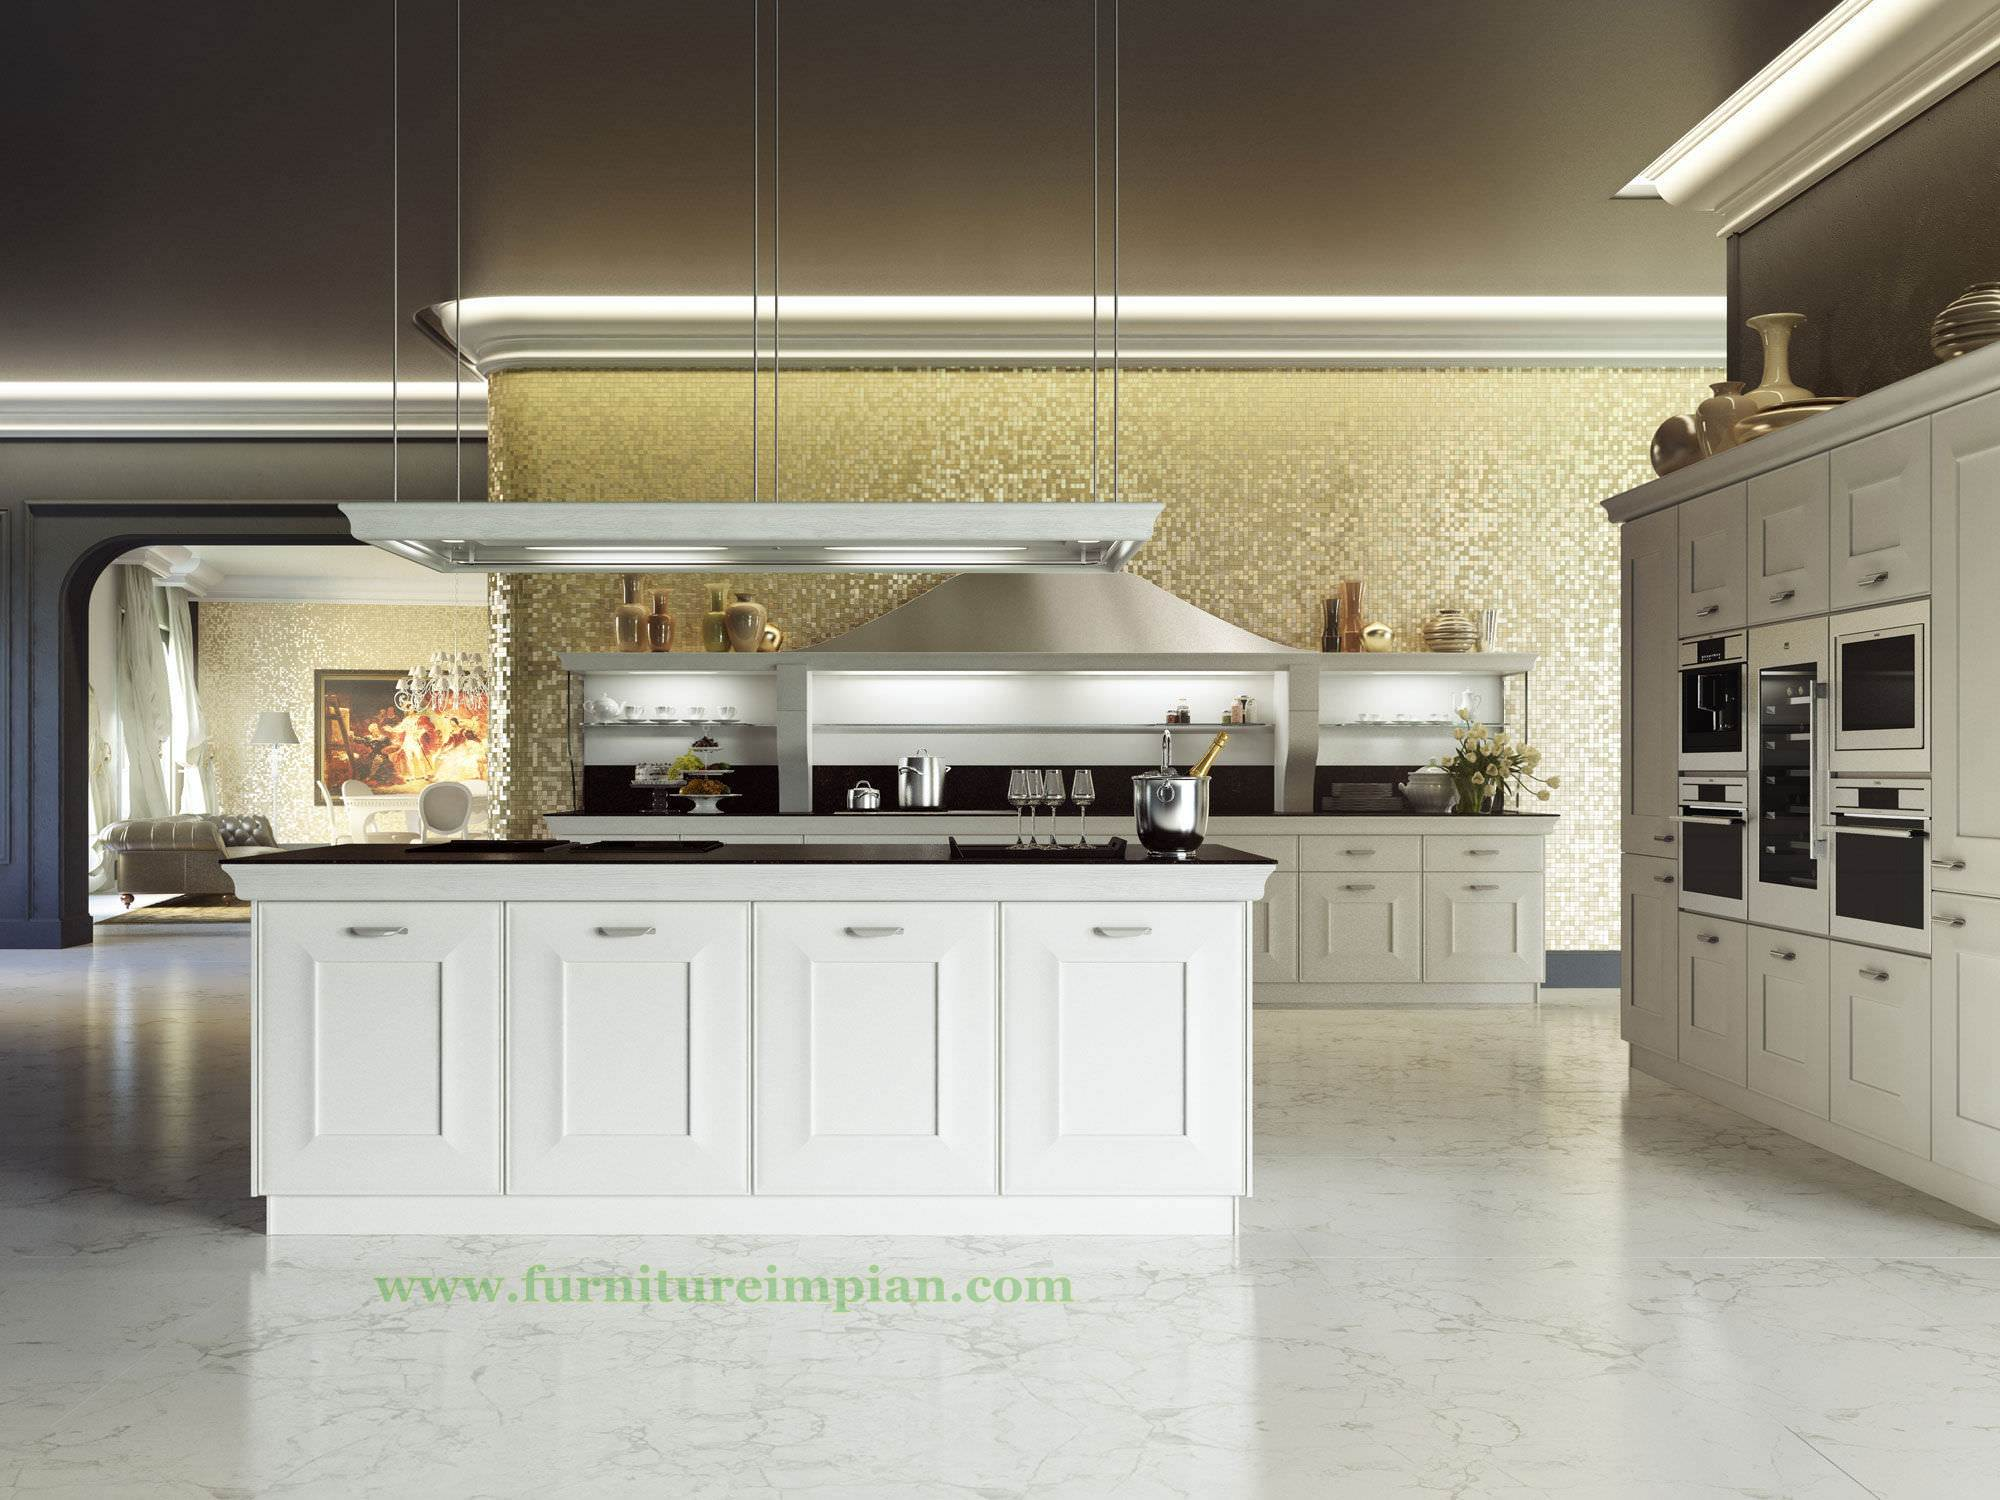 Kitchen set minimalis modern 2016 furniture impian rumah for Kitchen set minimalis modern 2016